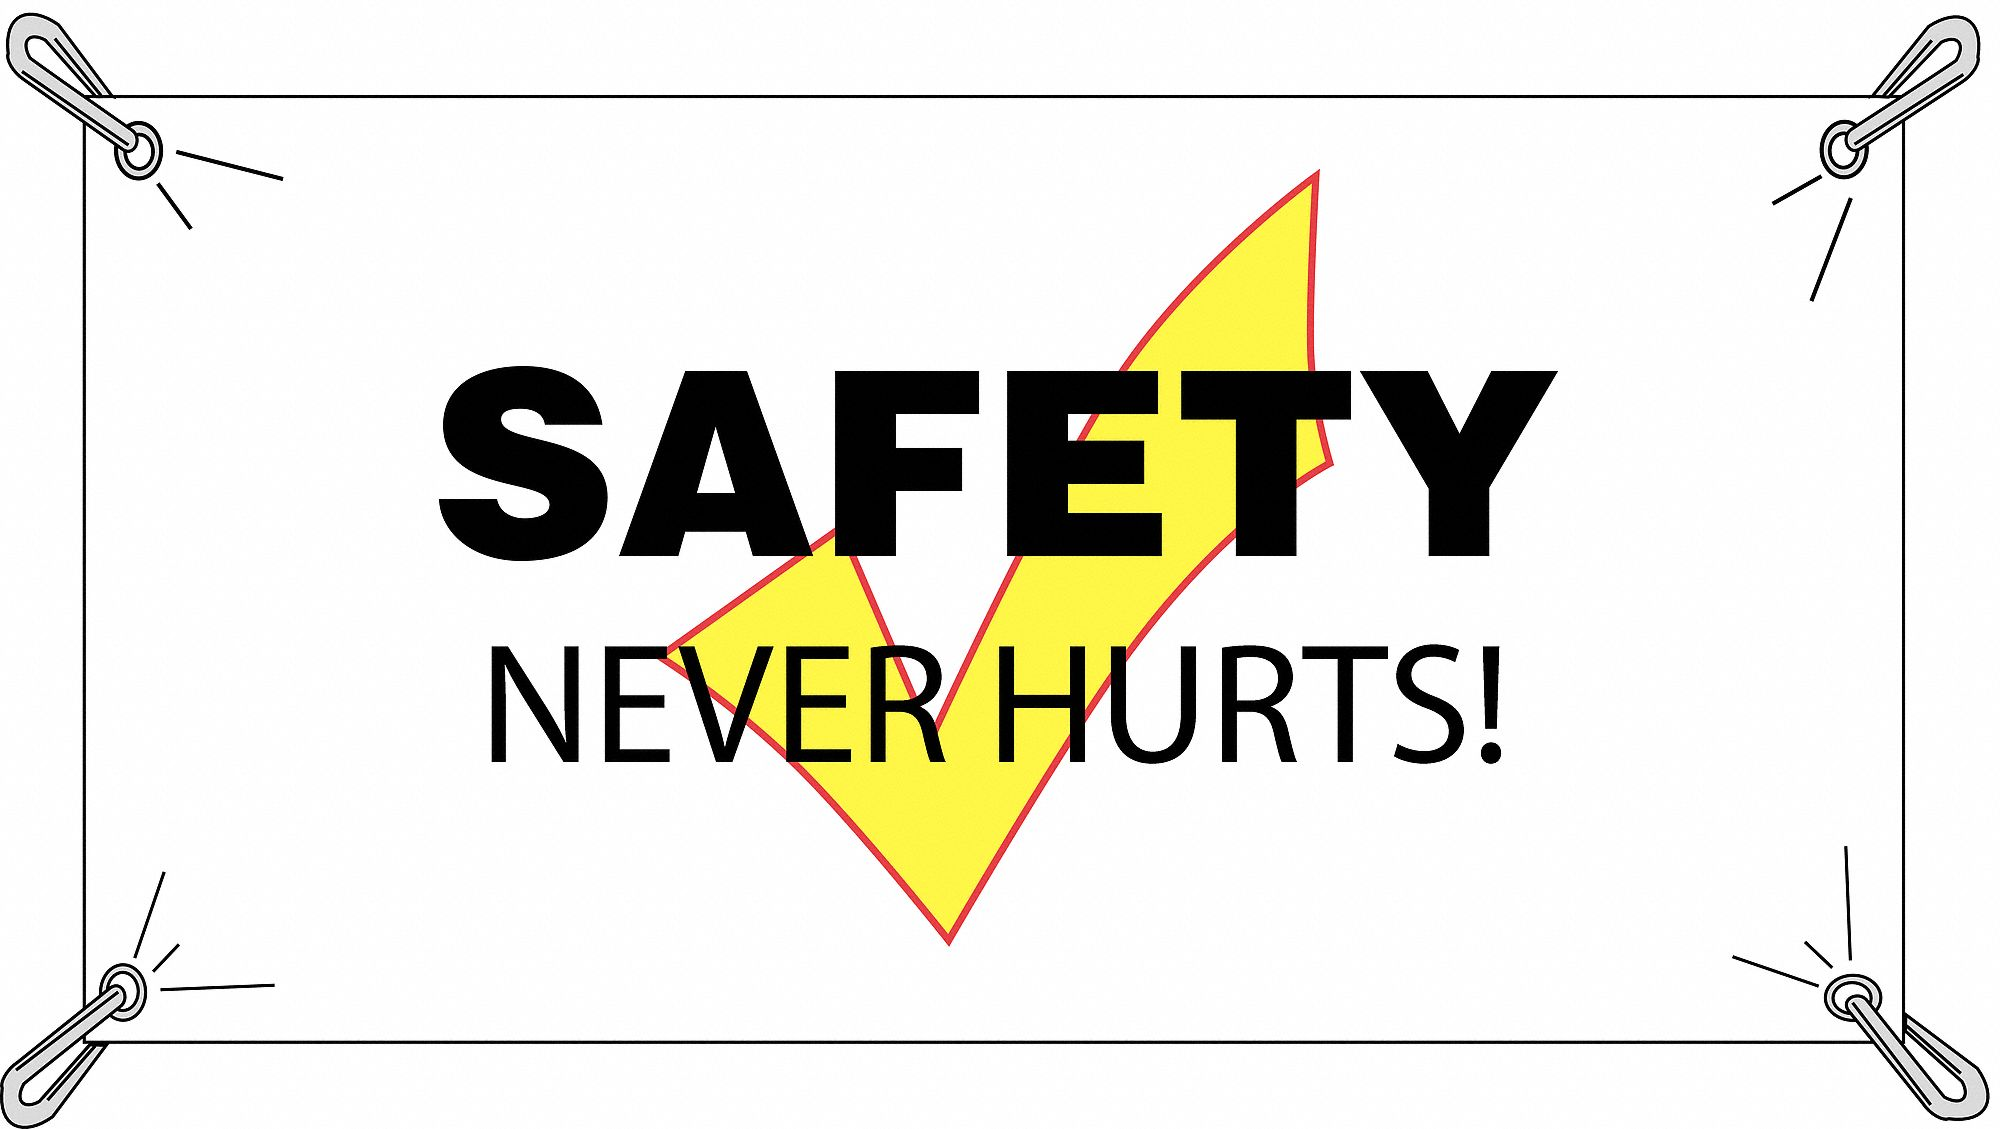 Safety Banner,  Safety Banner Legend Safety Never Hurts,  36 in x 60 in,  English